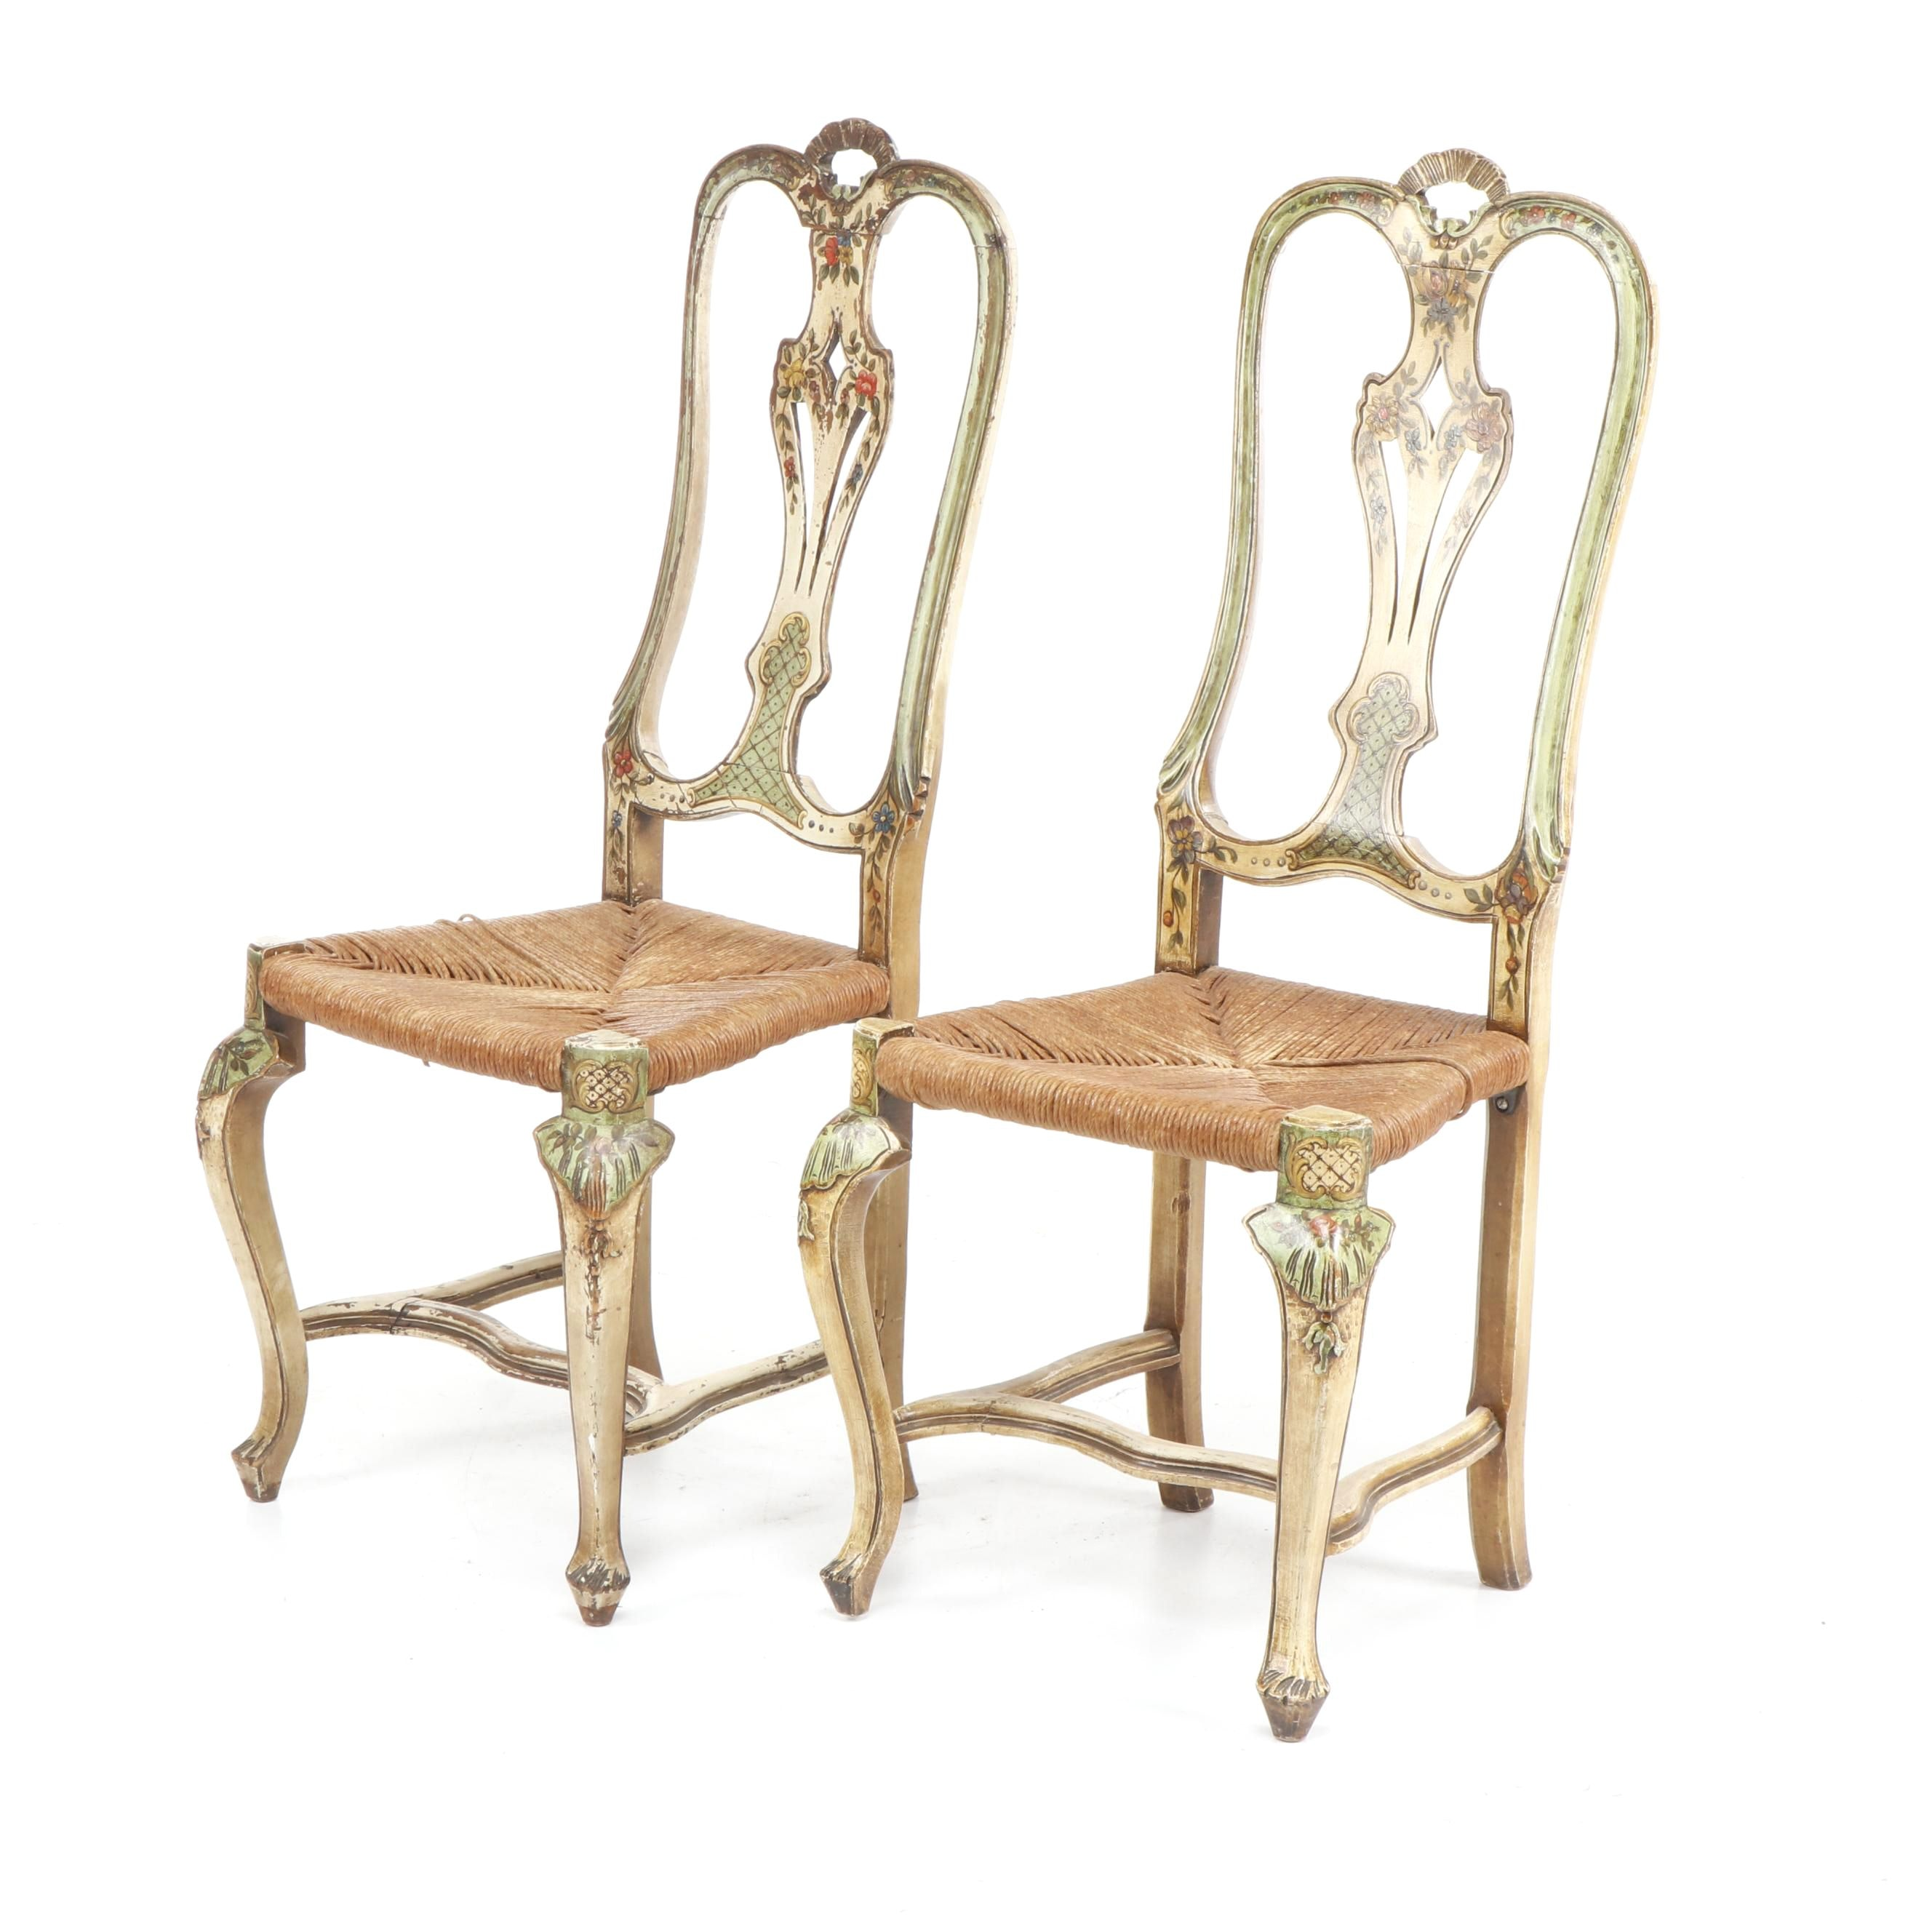 Hand-Painted Queen Anne Style Side Chairs with Rush Seats